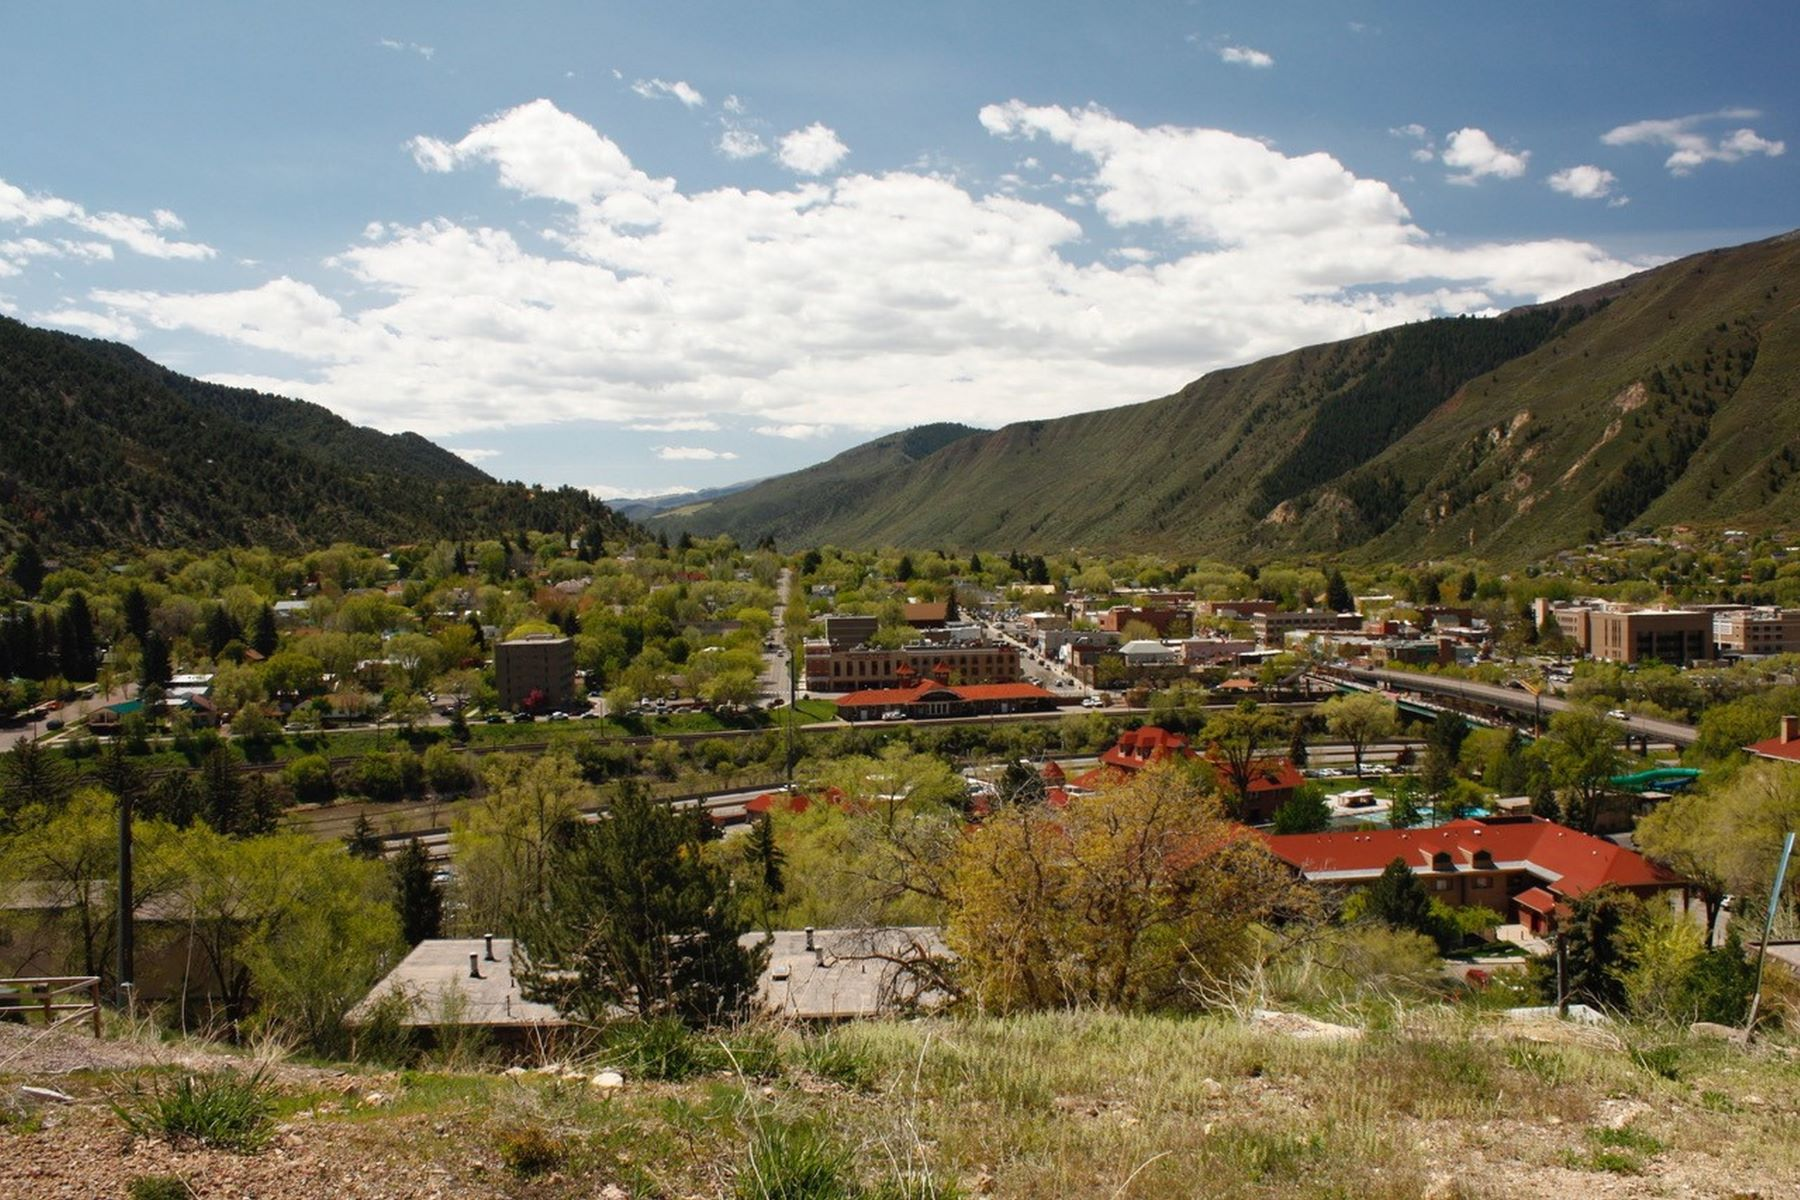 Land for Sale at Triplex Lot in Downtown Glenwood Springs 502-506 Echo Street, Glenwood Springs, Colorado, 81601 United States